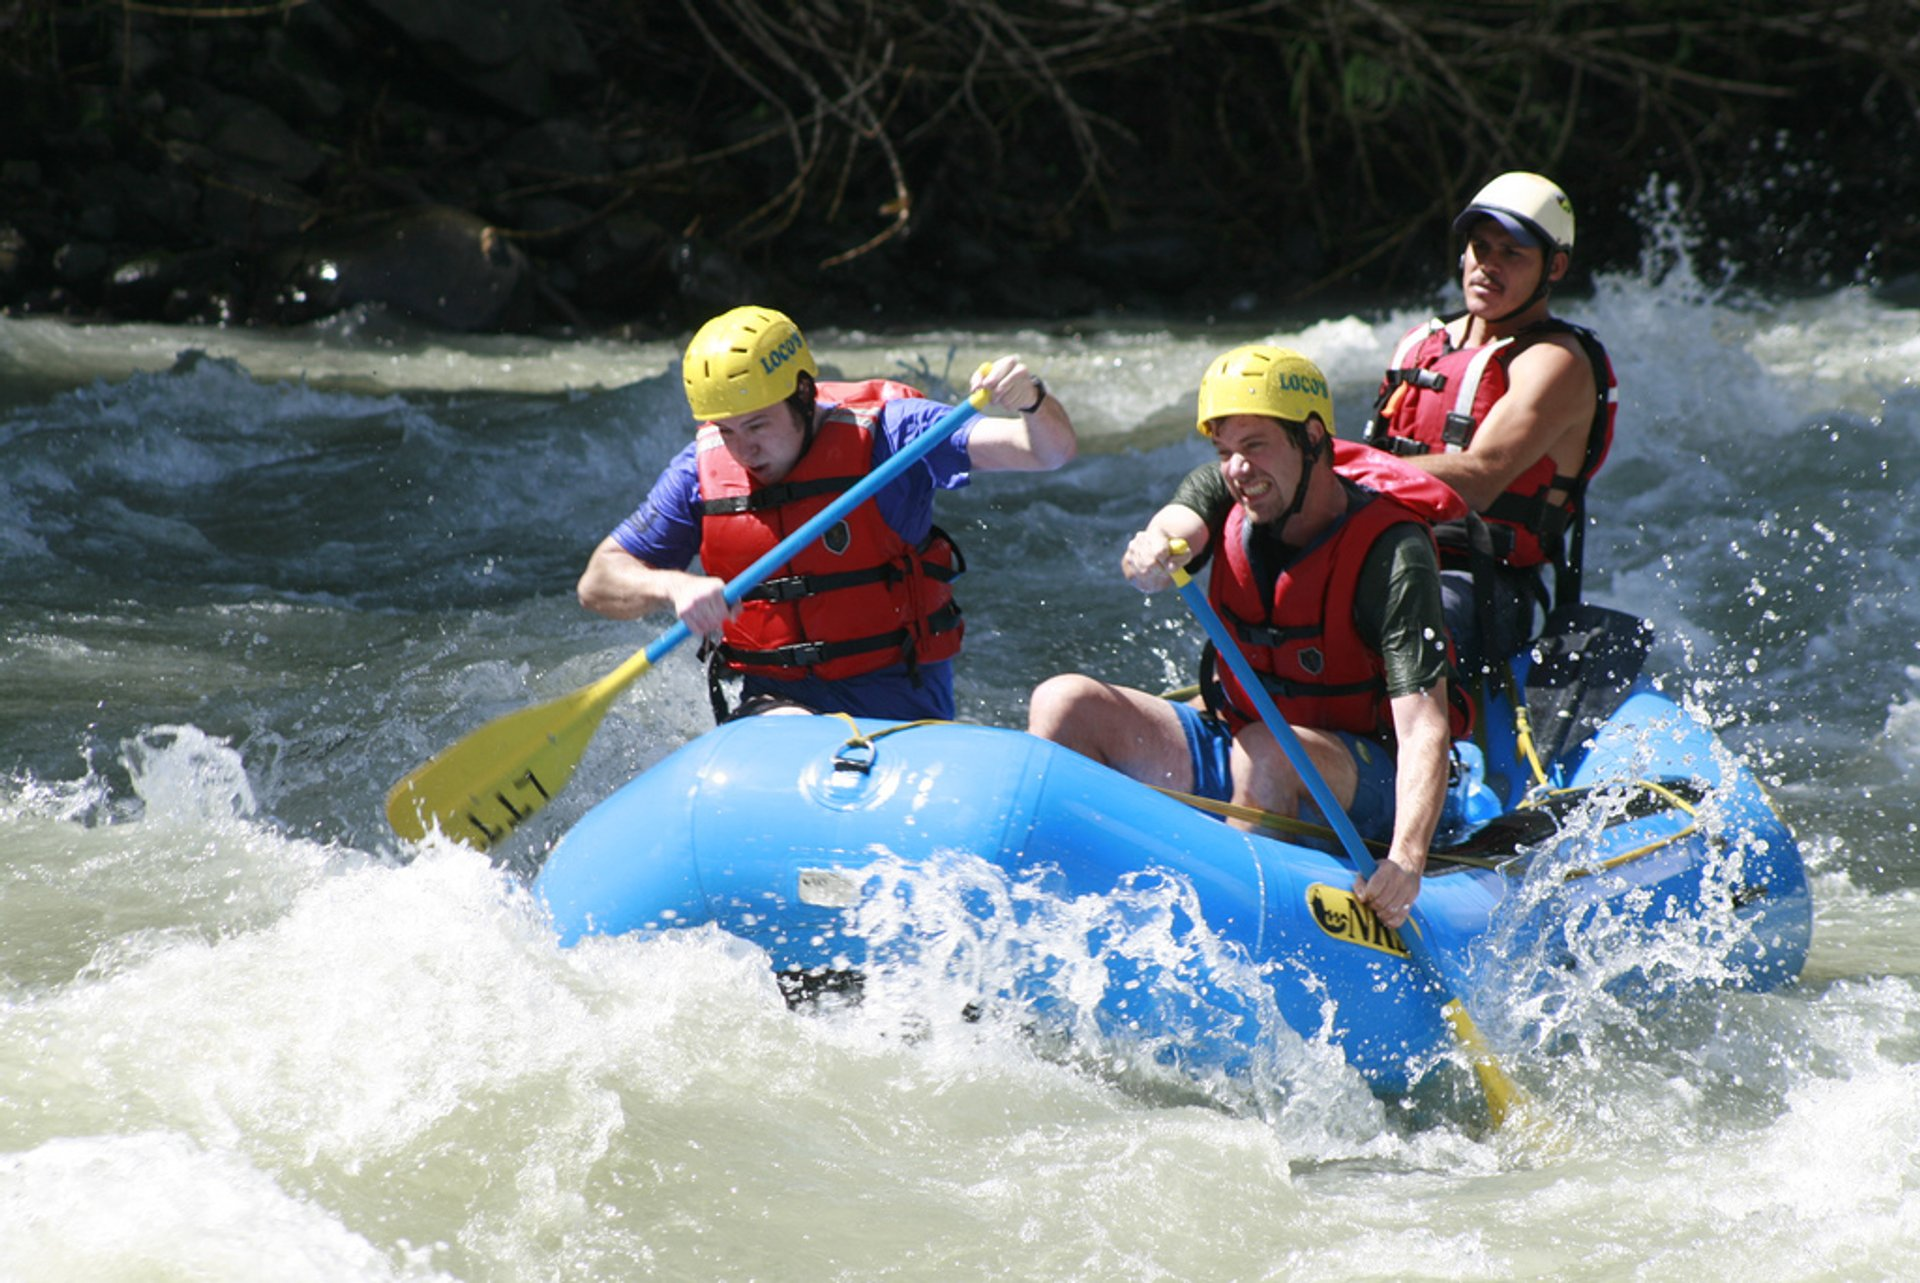 Rafting in Costa Rica - Best Season 2020